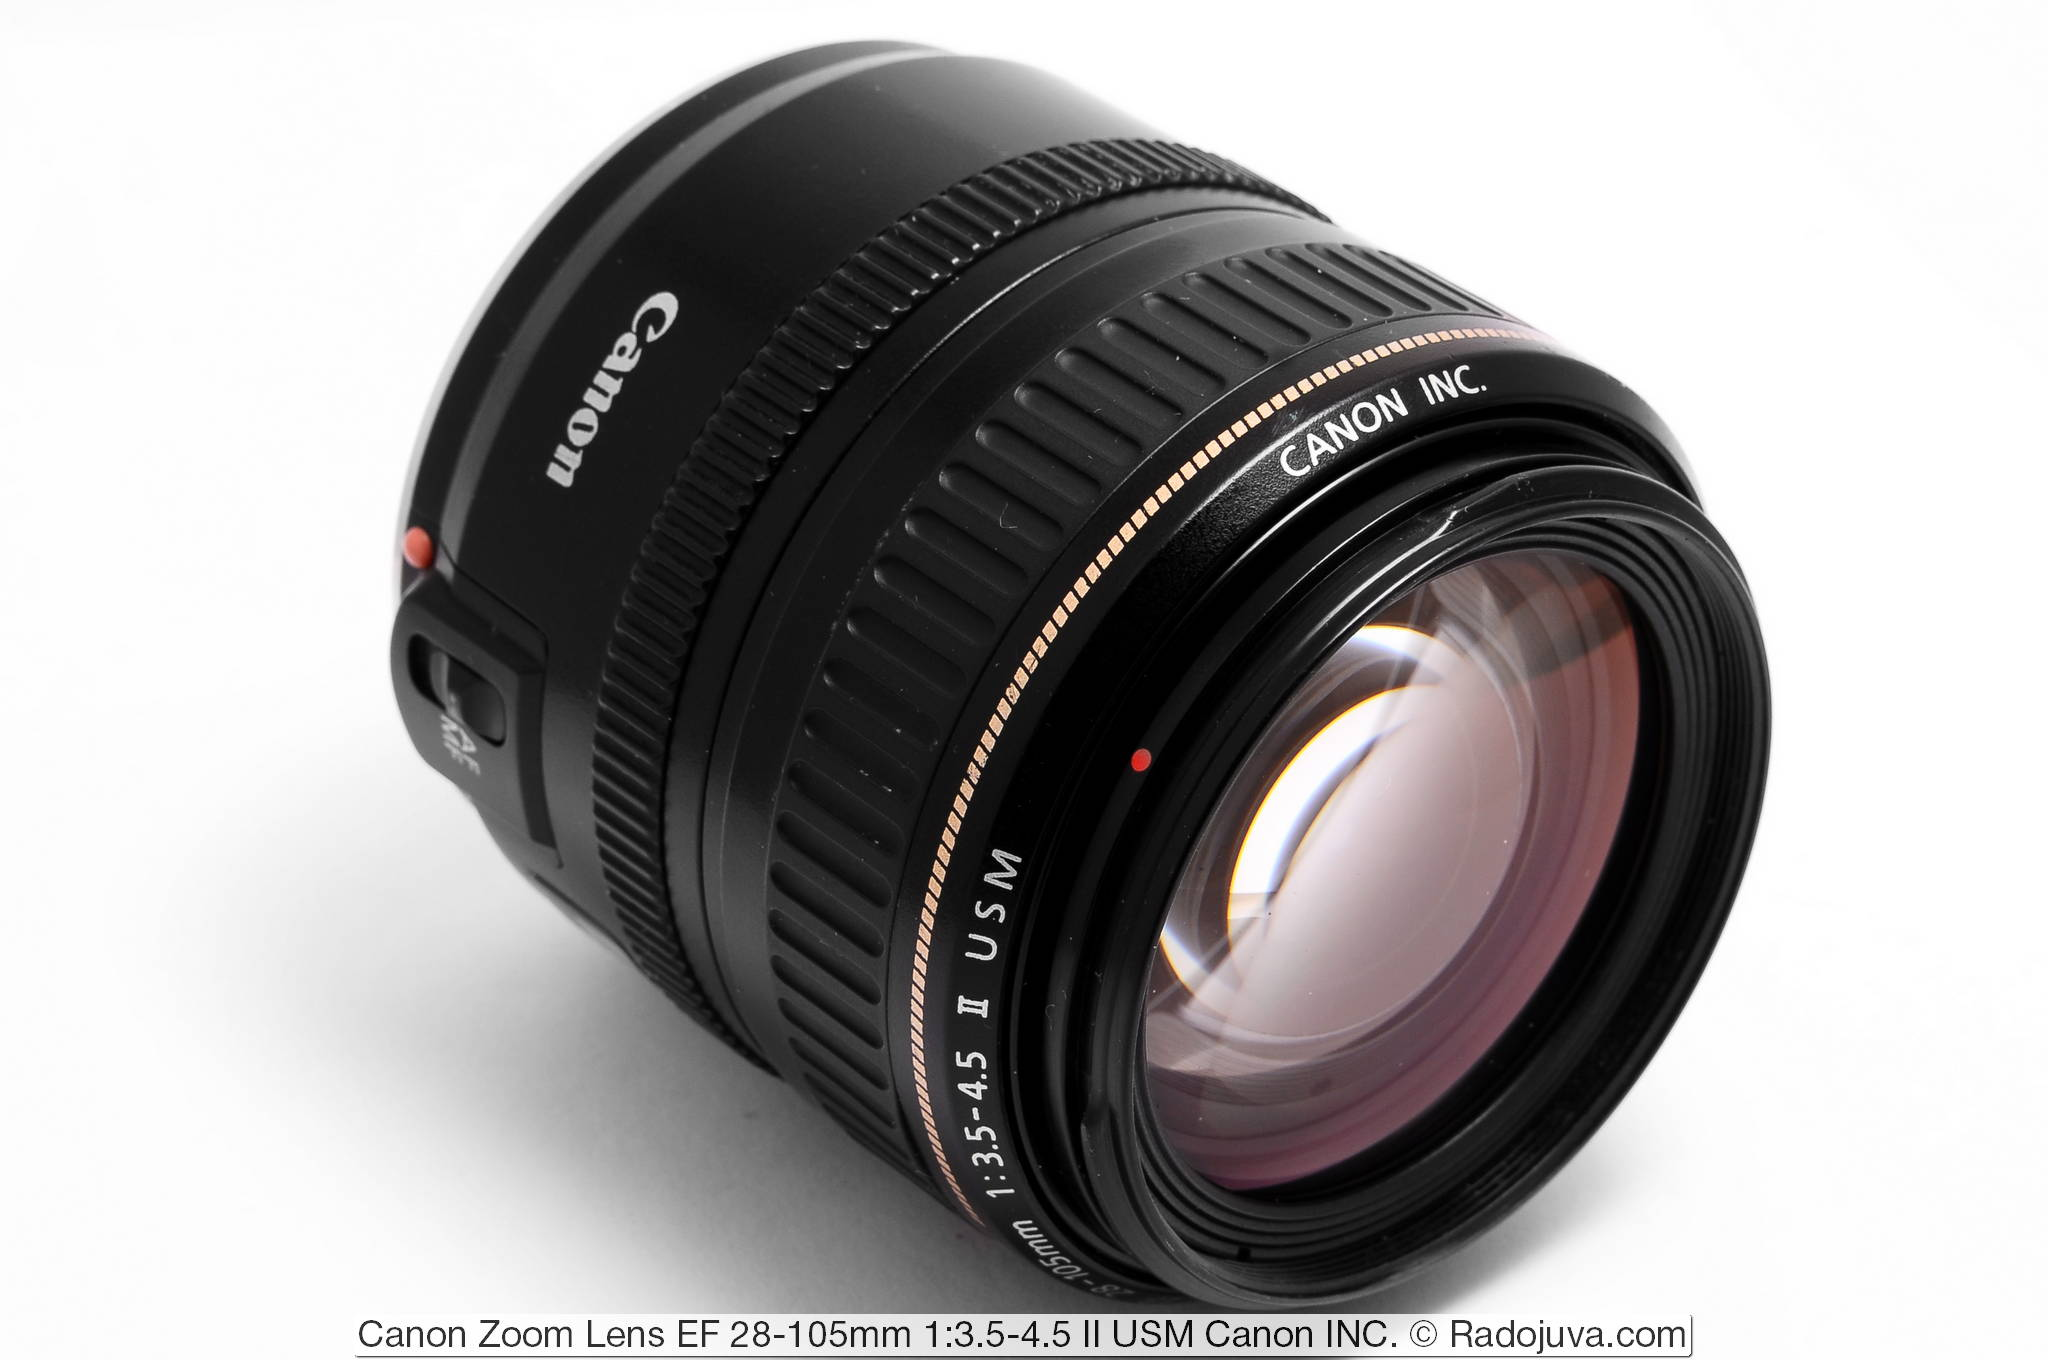 Canon Zoom Lens EF 28-105mm 1:3.5-4.5 II USM Canon INC.